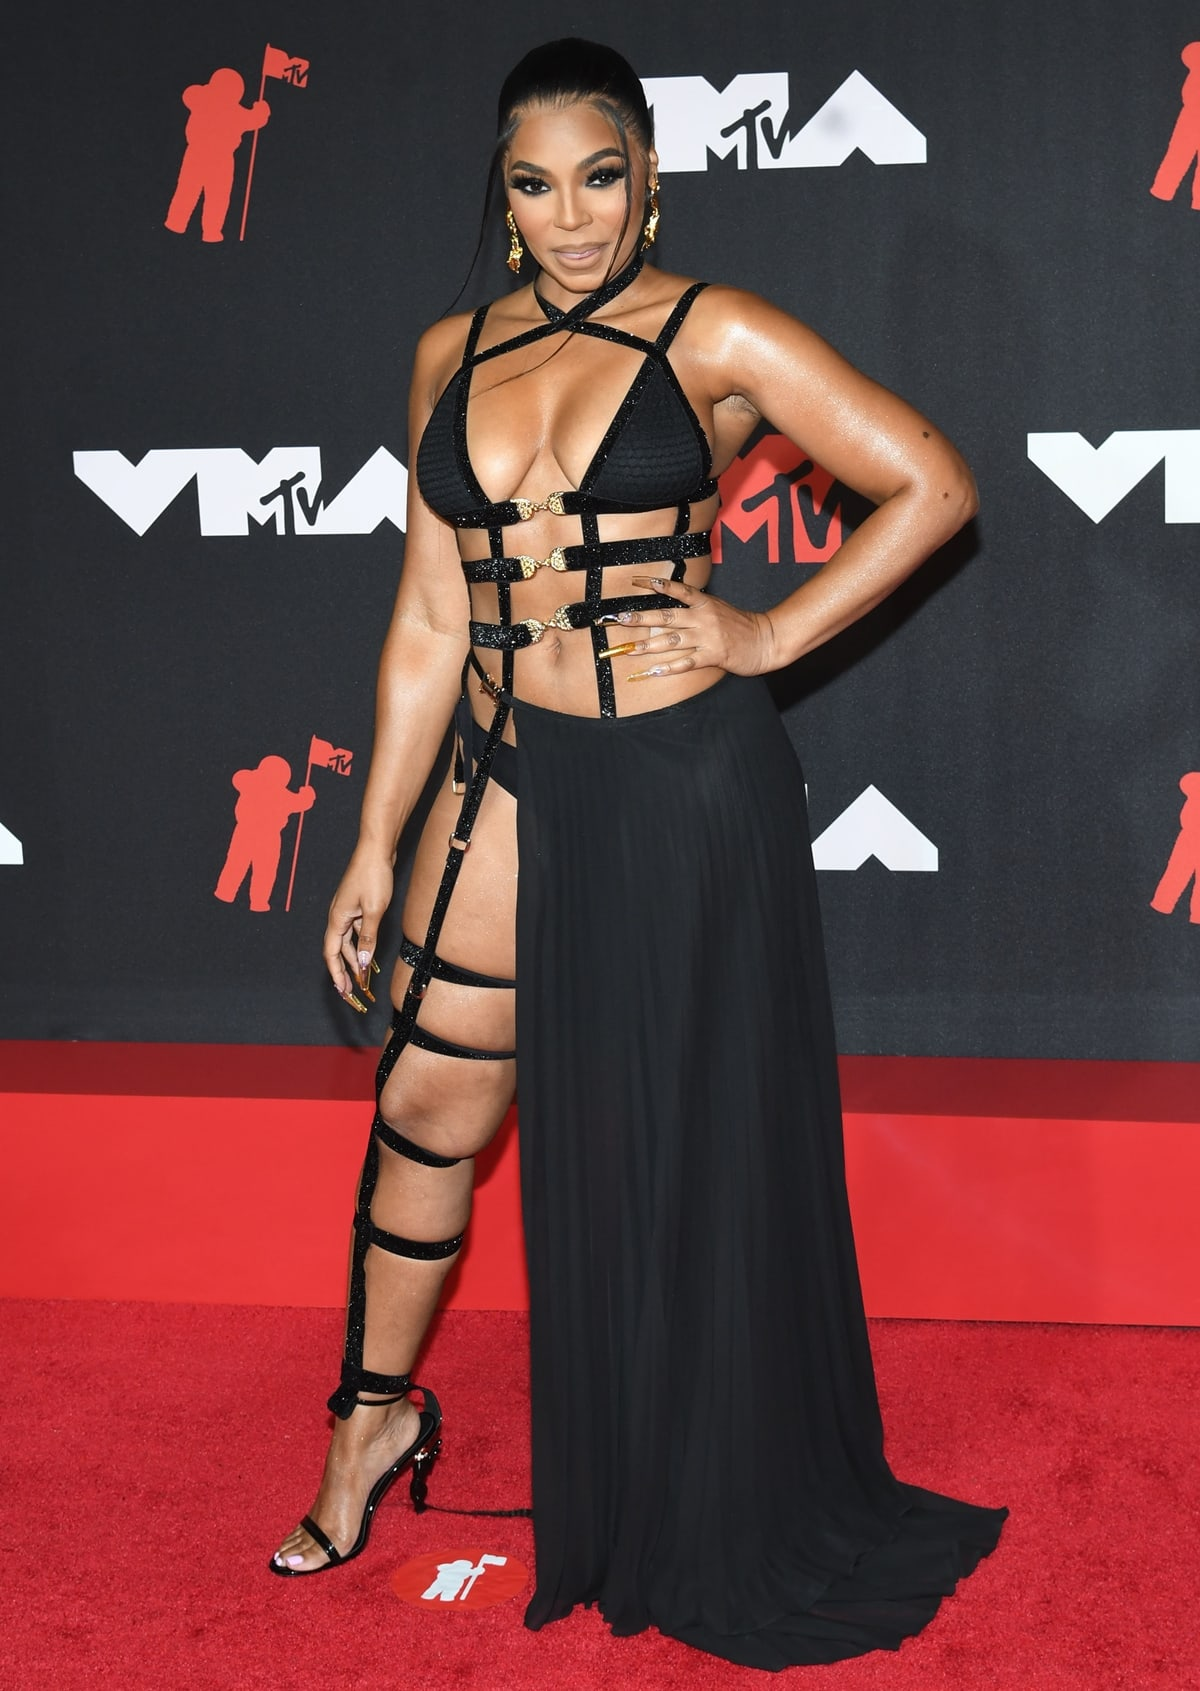 Ashanti in a Michael Costello outfit on the red carpet at the 2021 MTV Video Music Awards